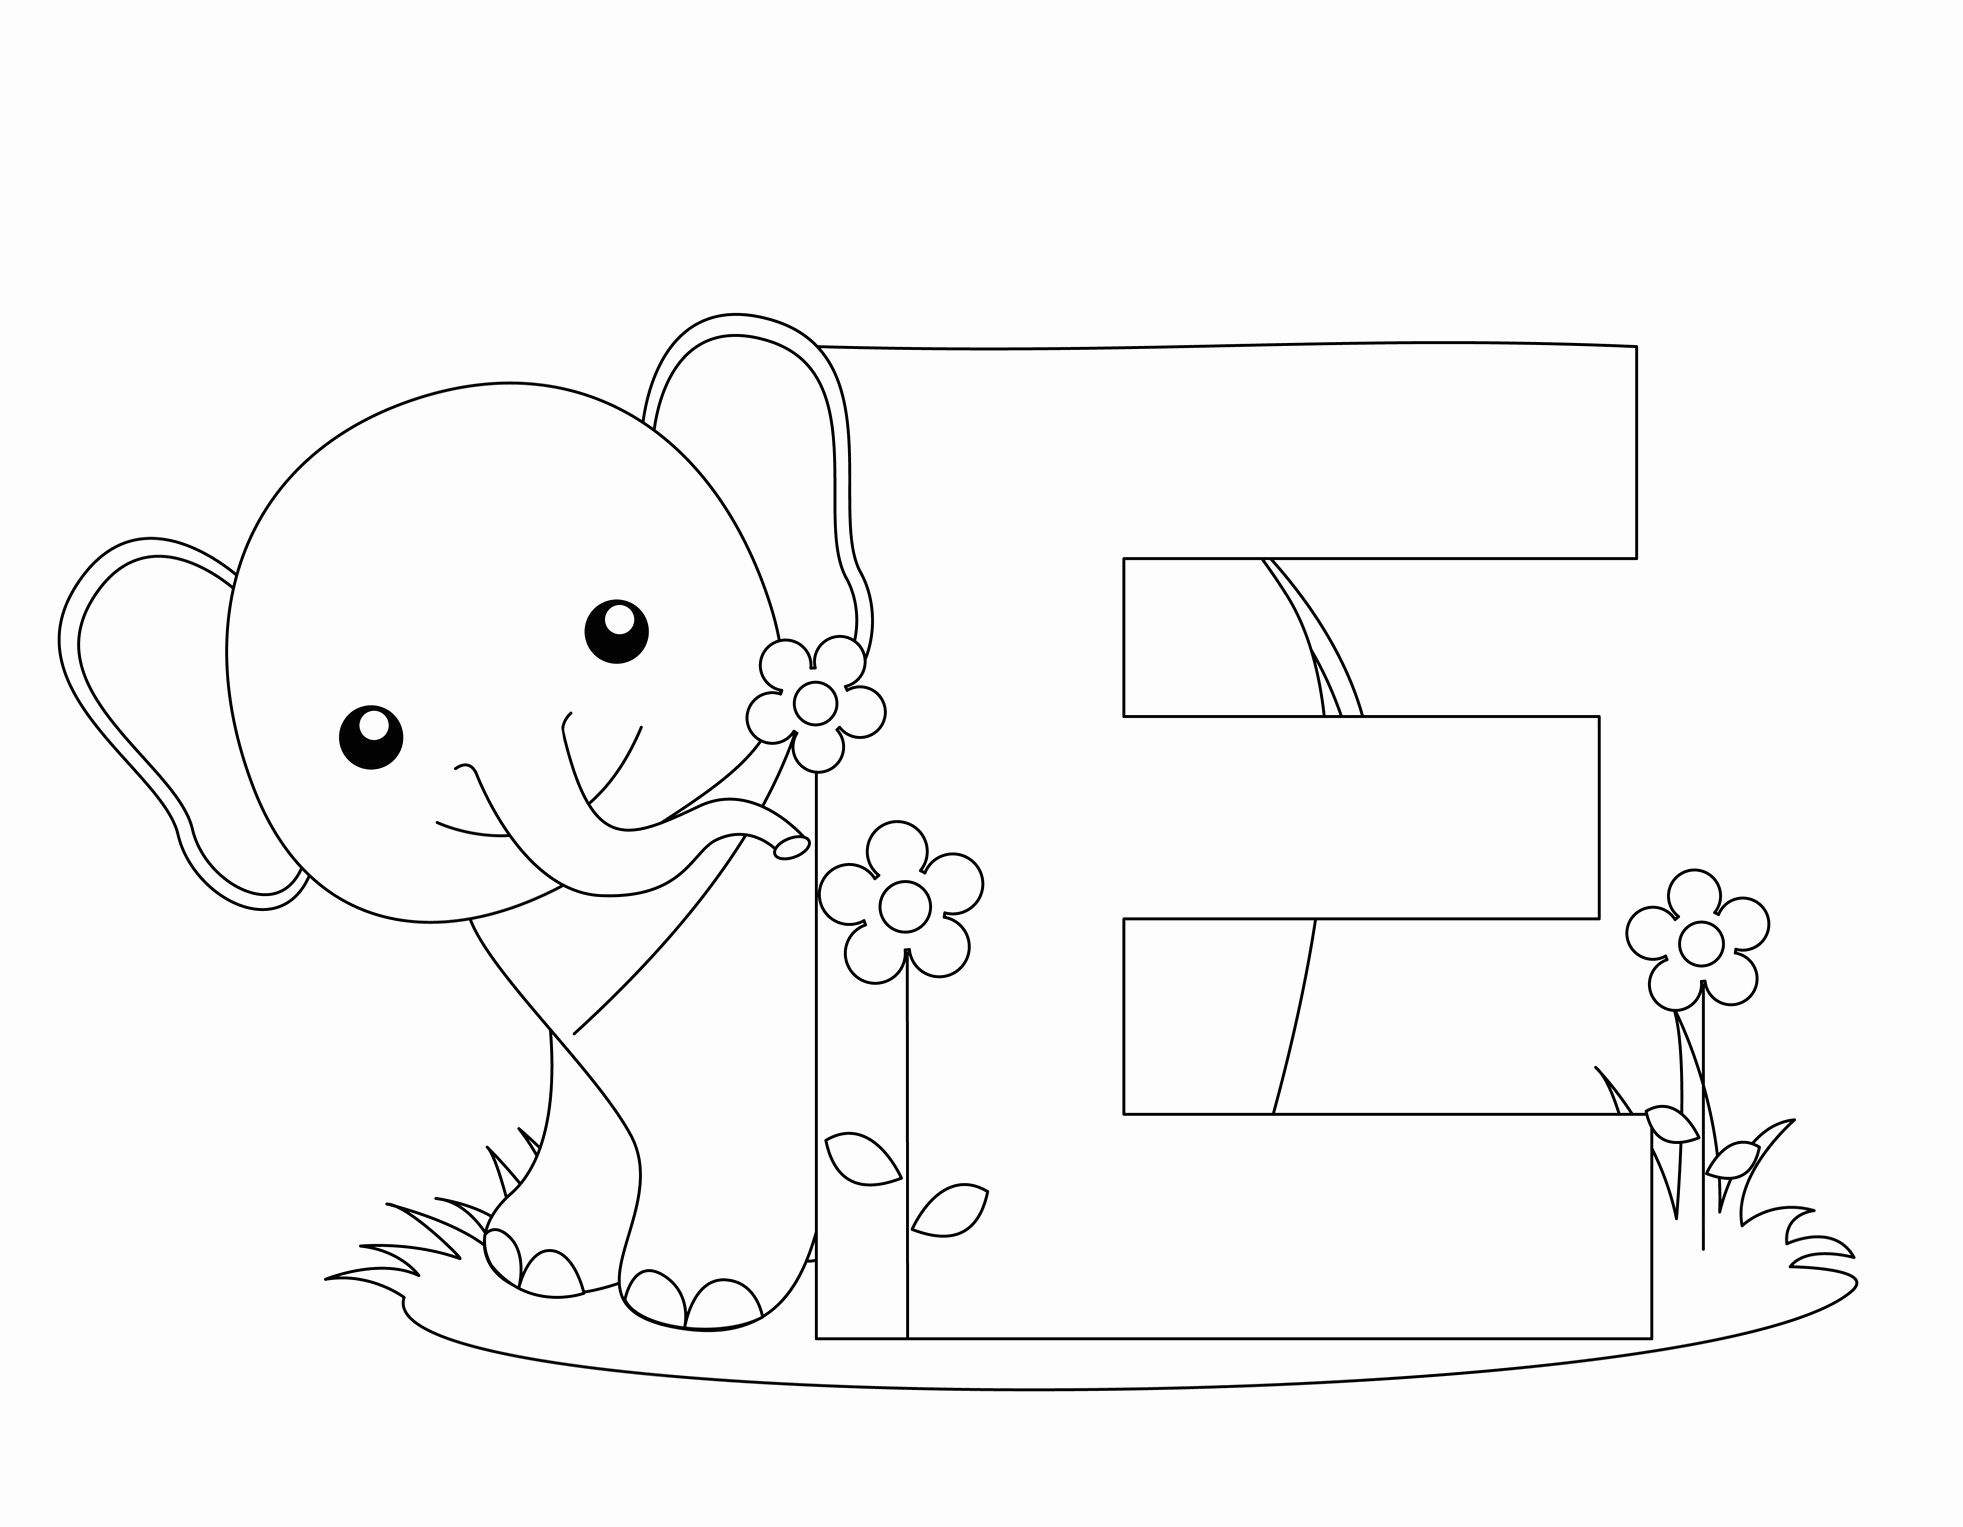 Alphabet Coloring Pages Free In 2020 With Images Abc Coloring